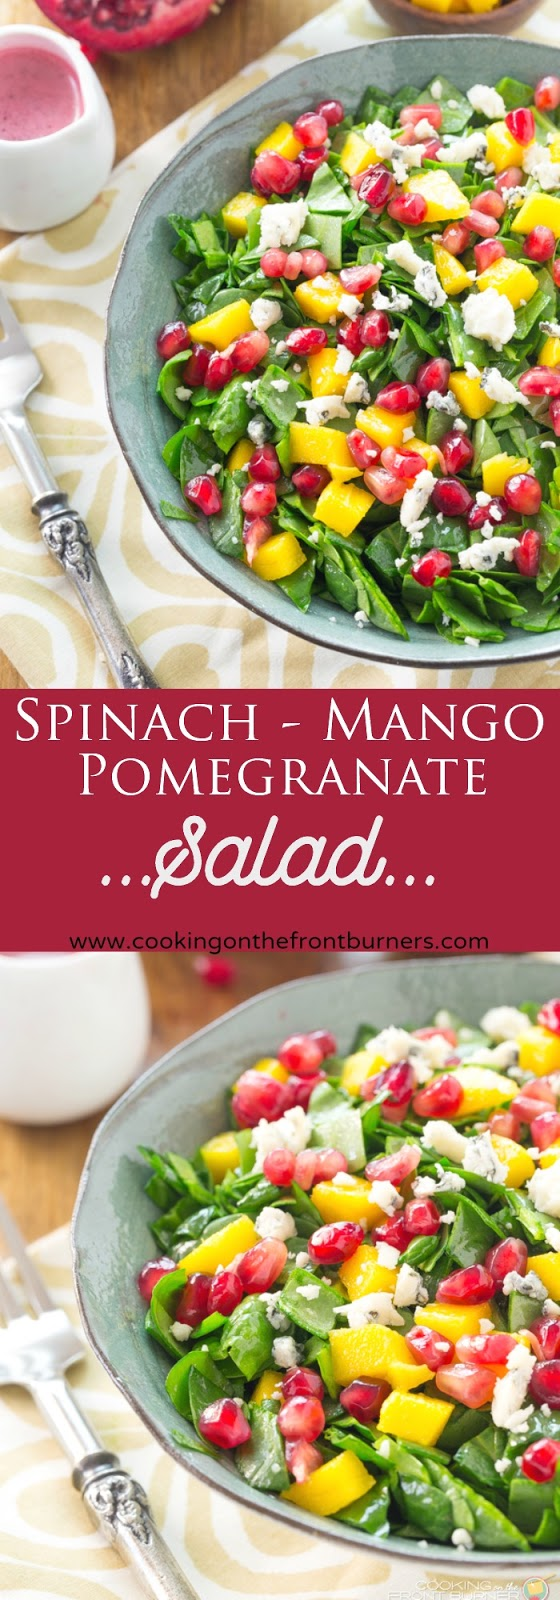 Chopped Spinach Pomegranate Salad | Cooking on the front Burner